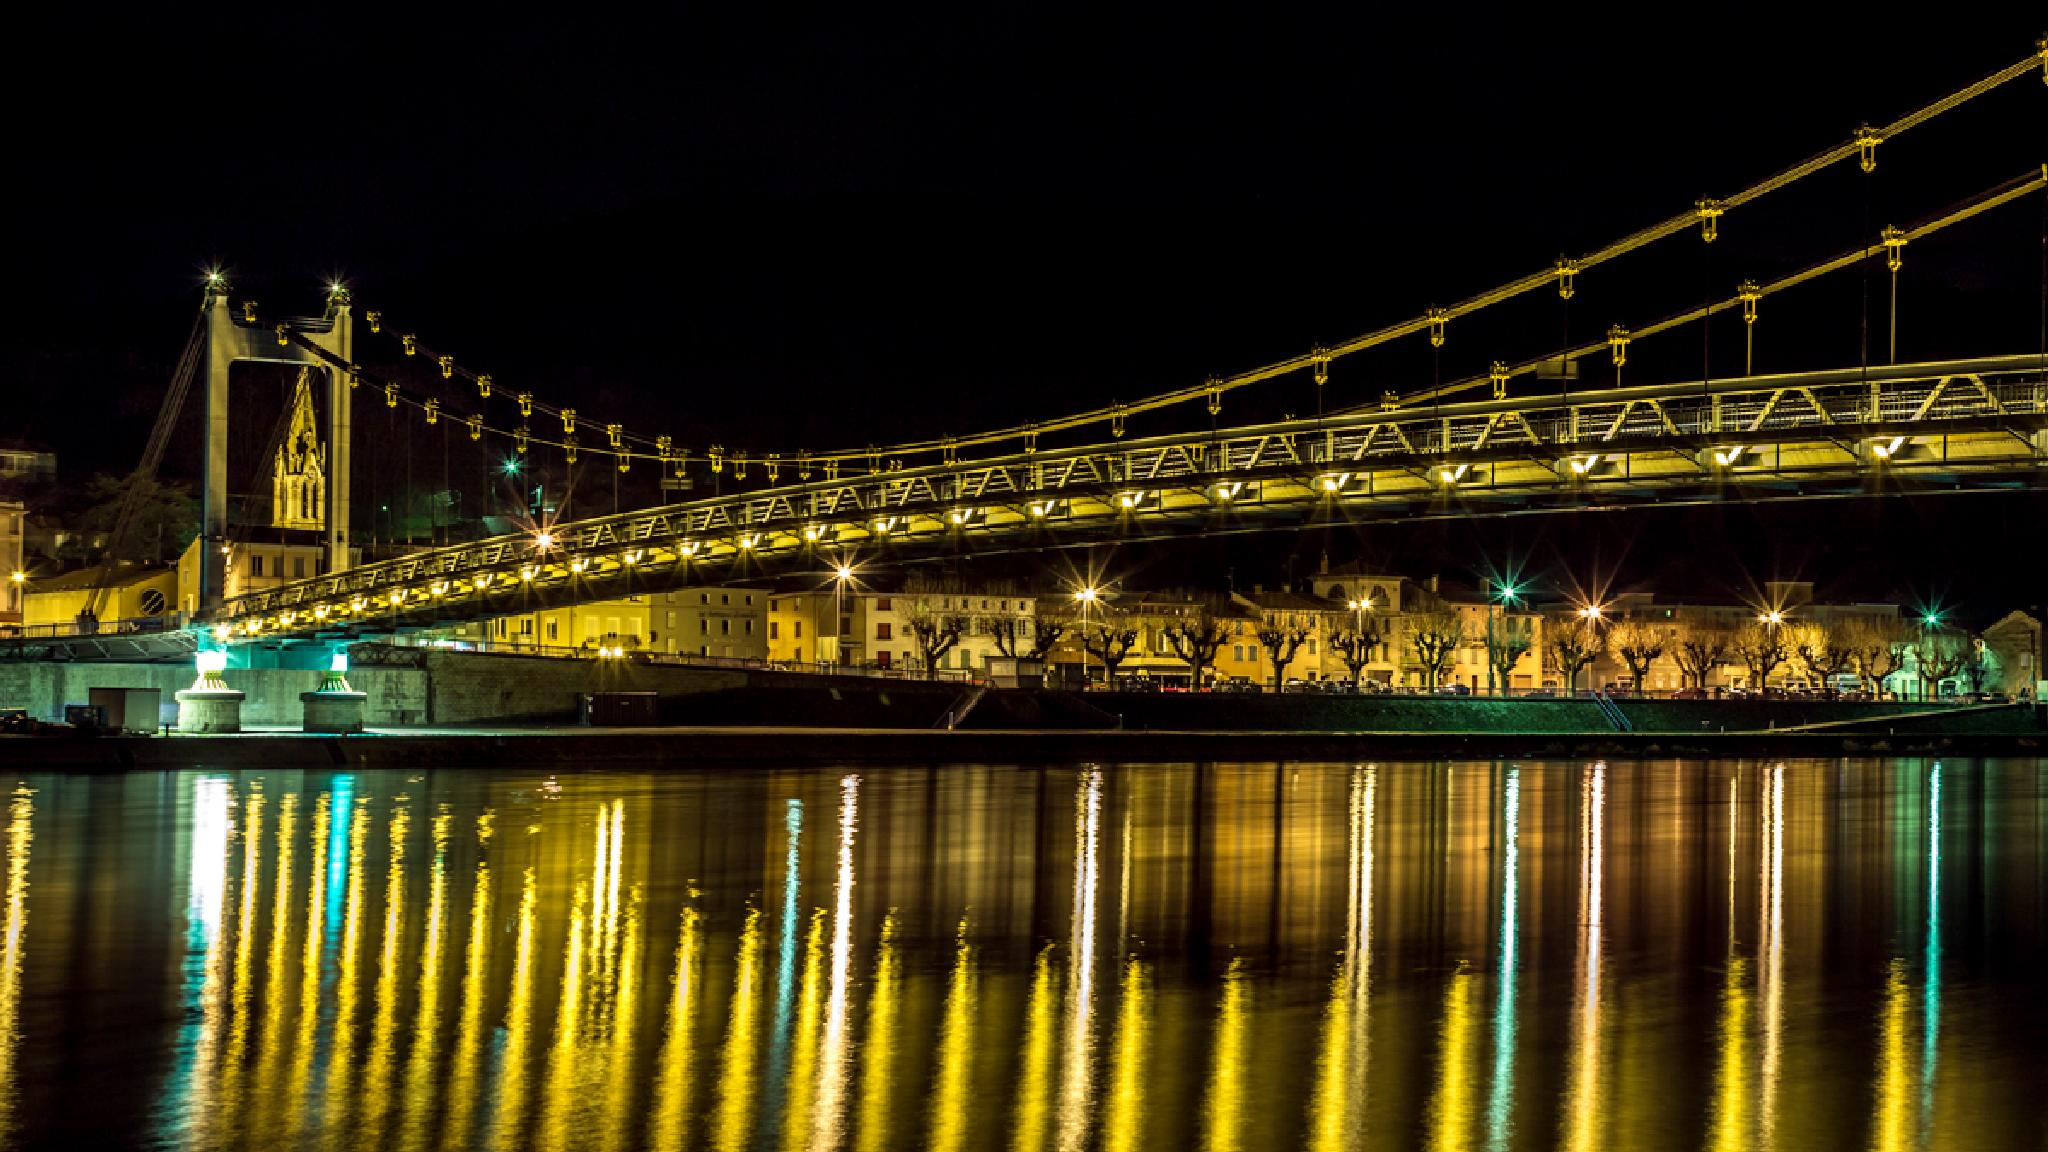 Over the river by olivier42